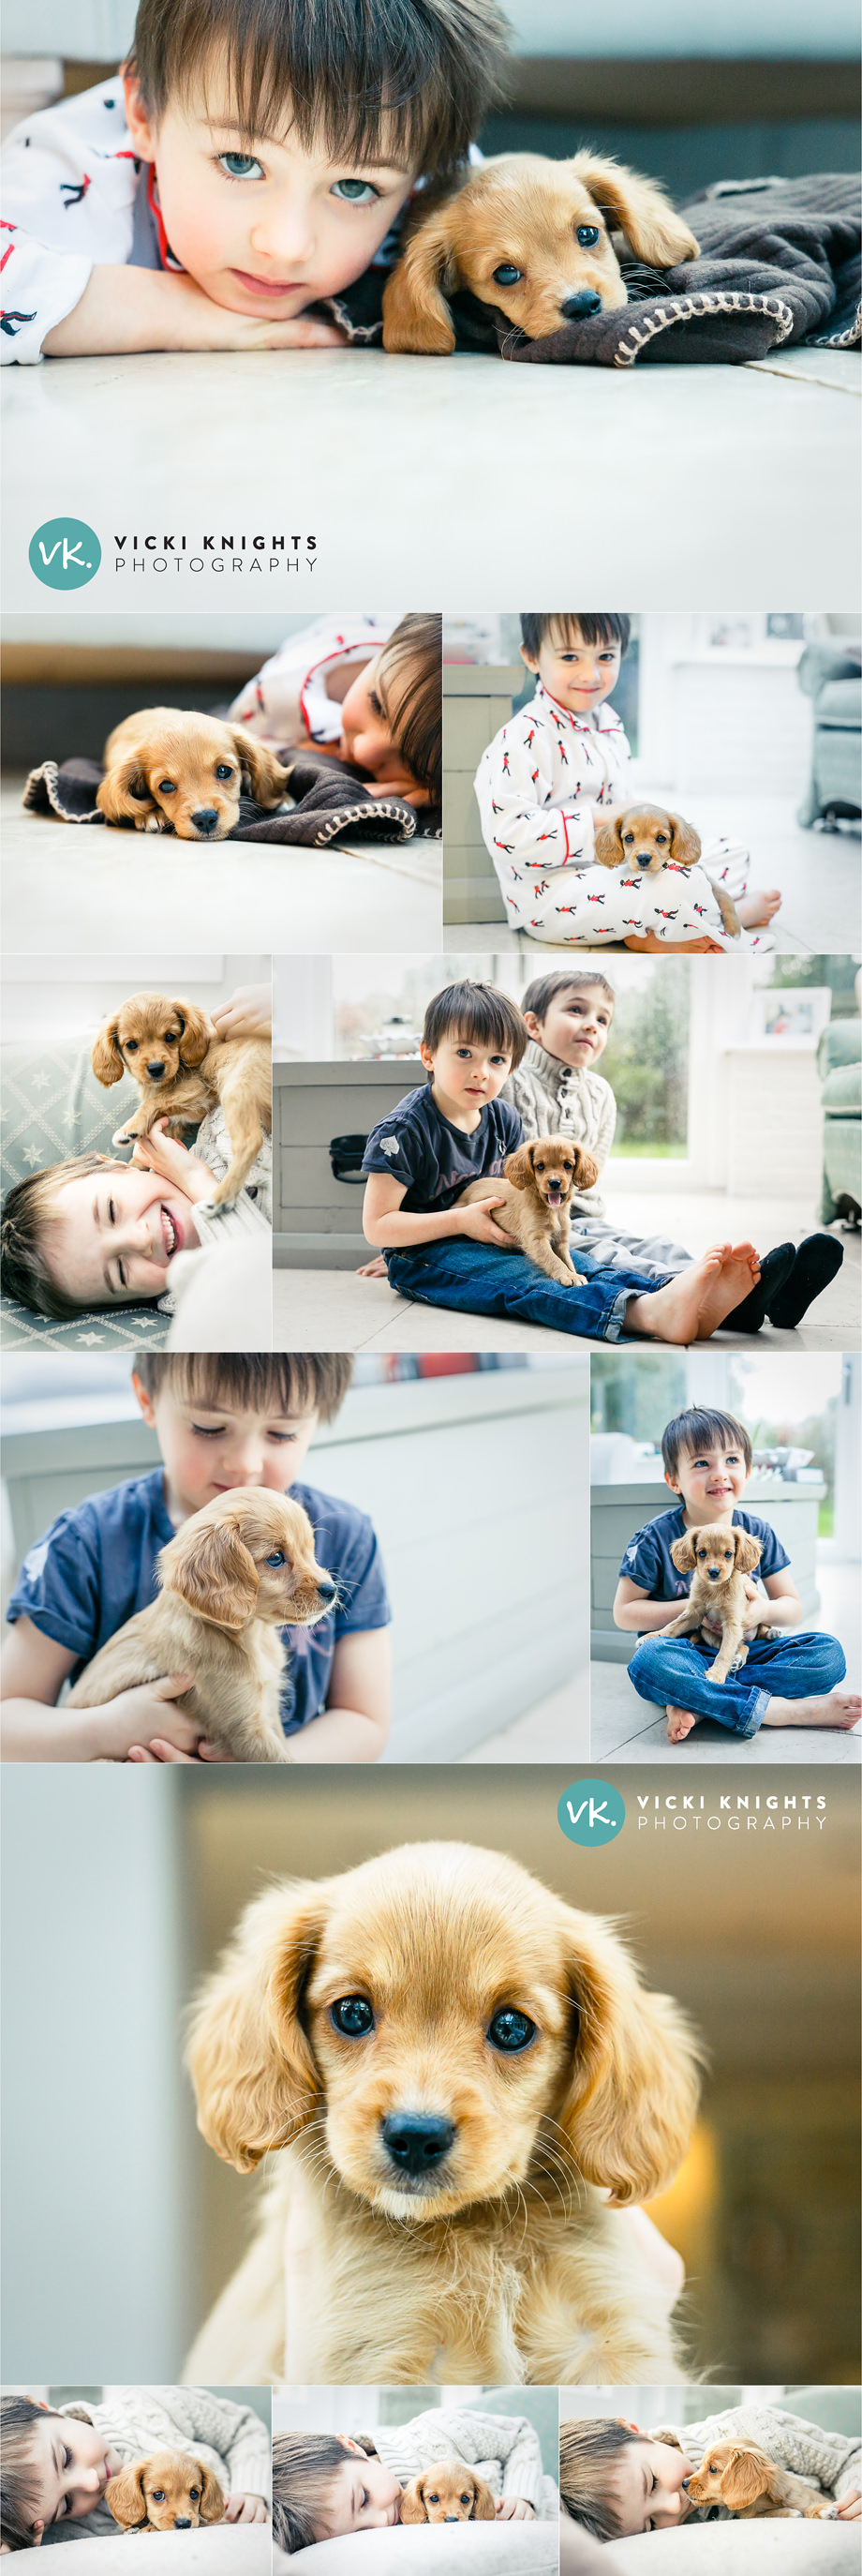 puppy-child-photography-surrey-guildford-vickiknightsphotography